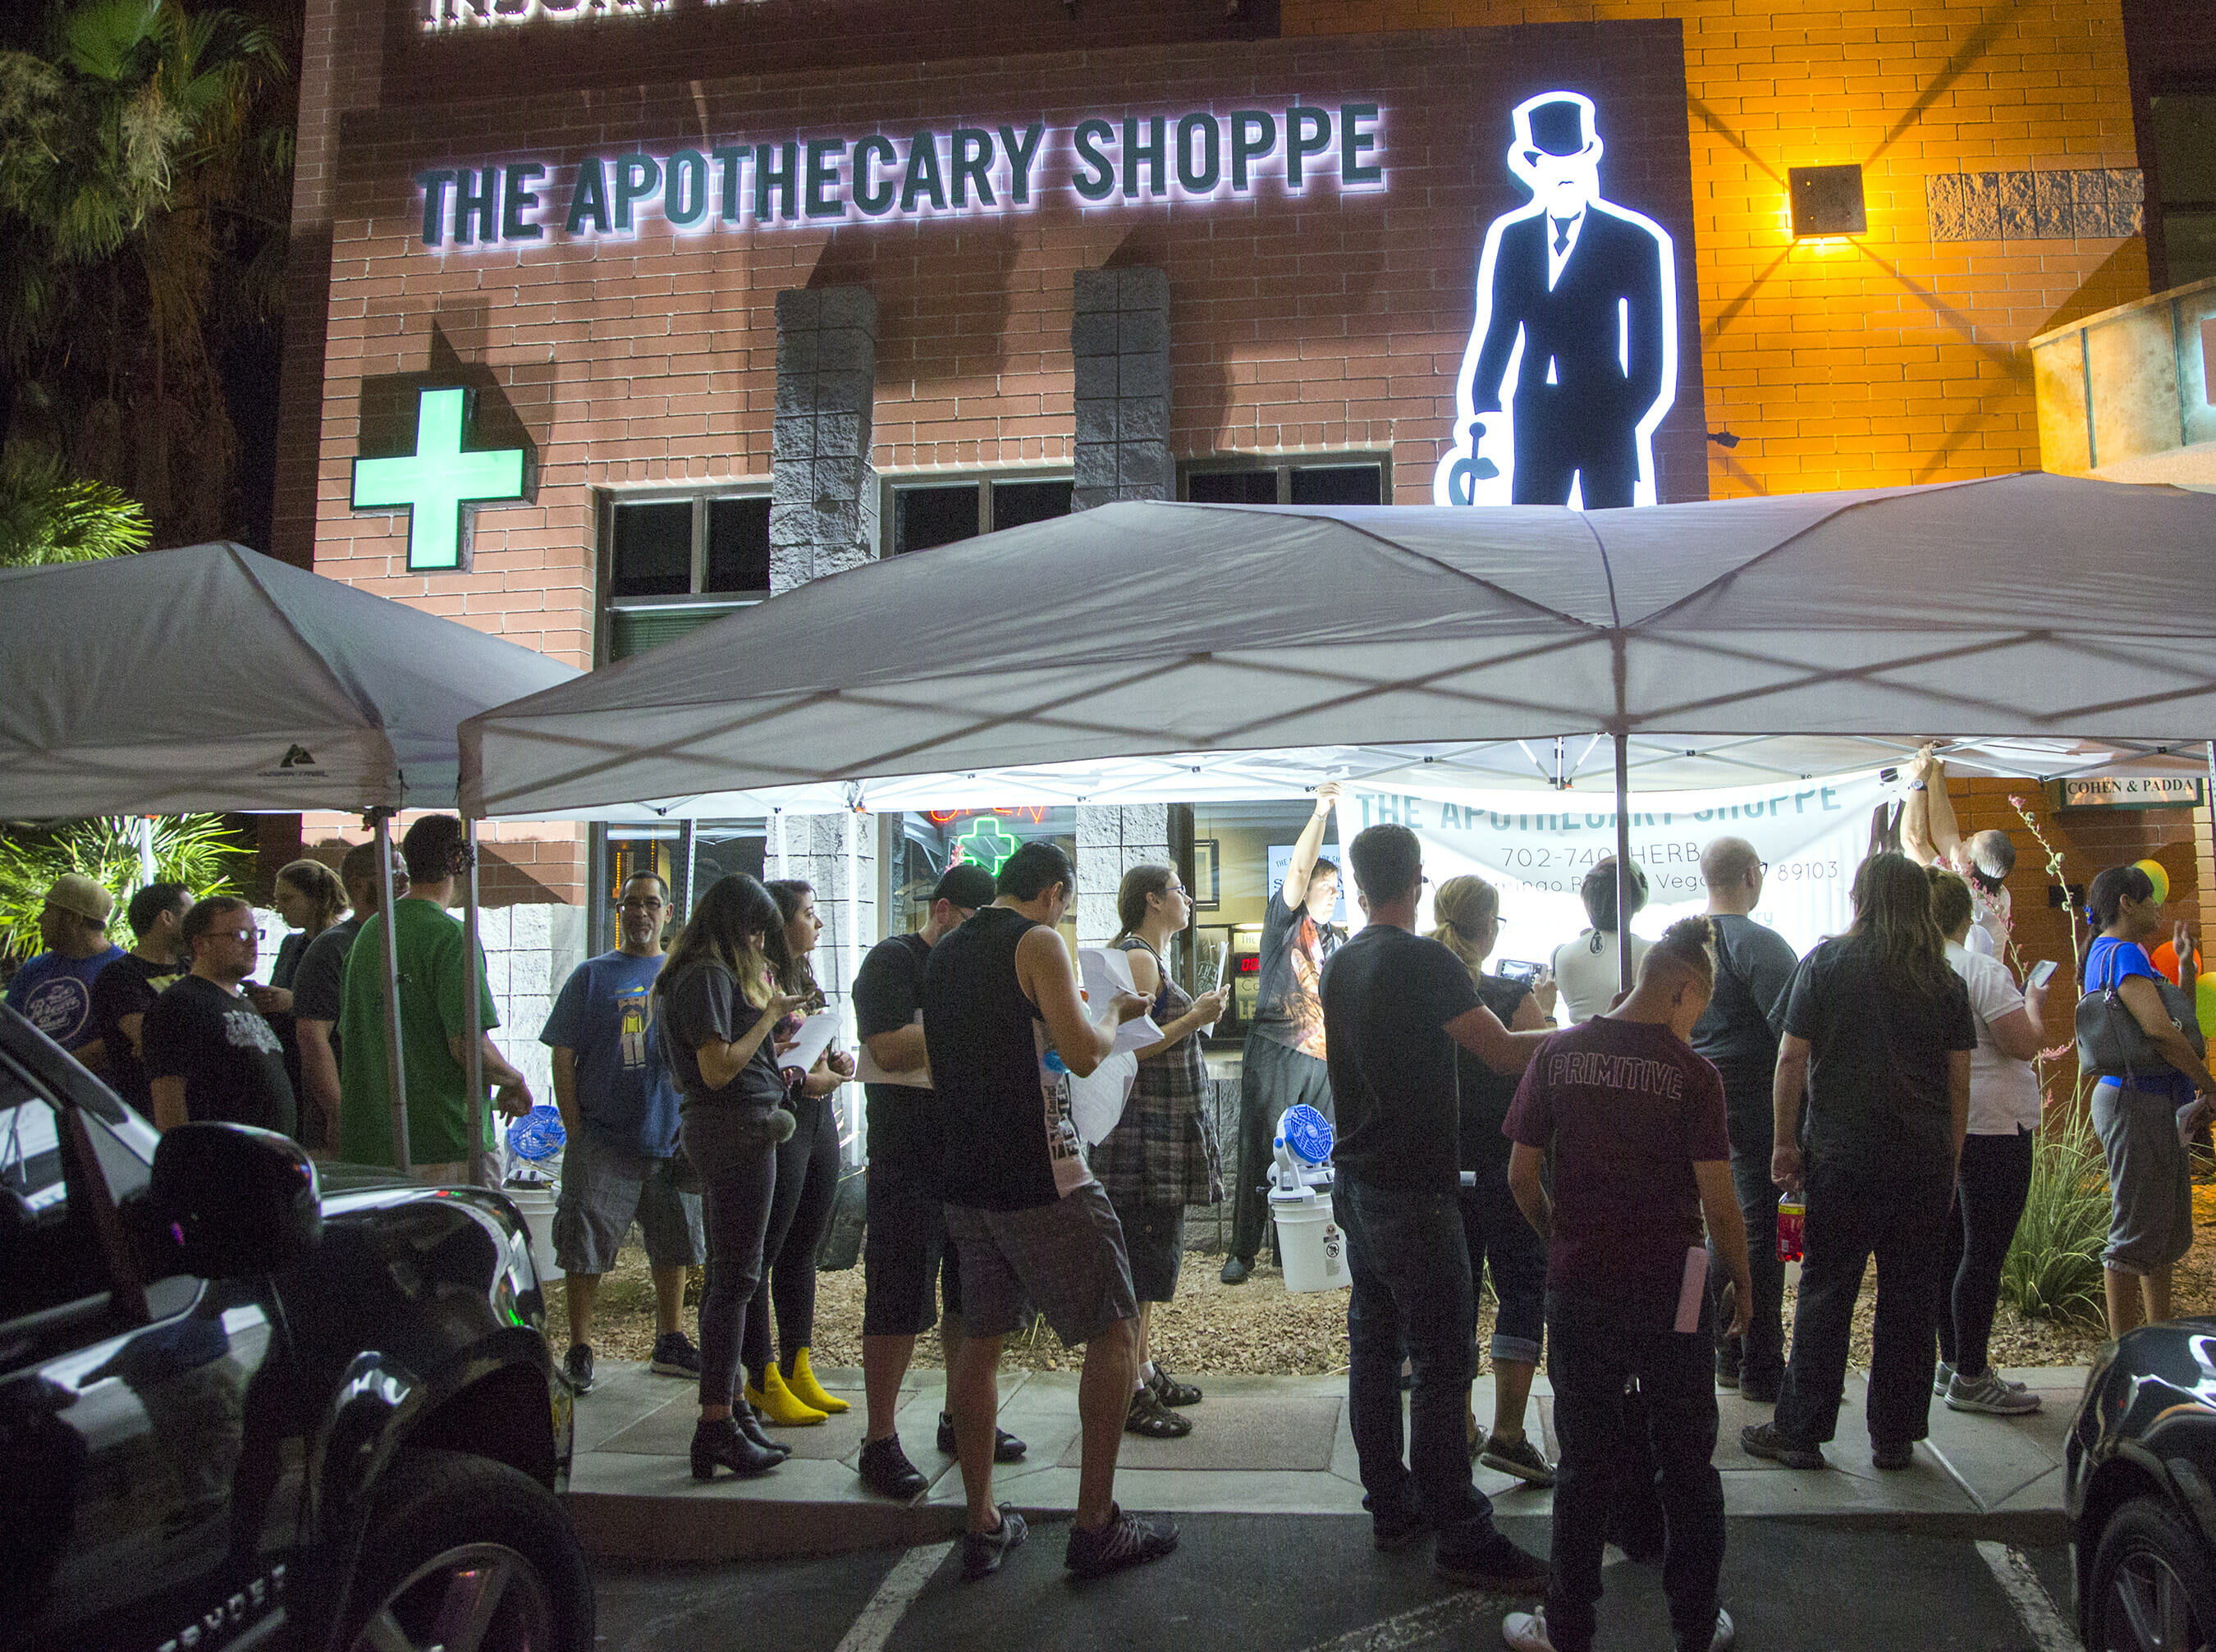 People stand in line at dispensary